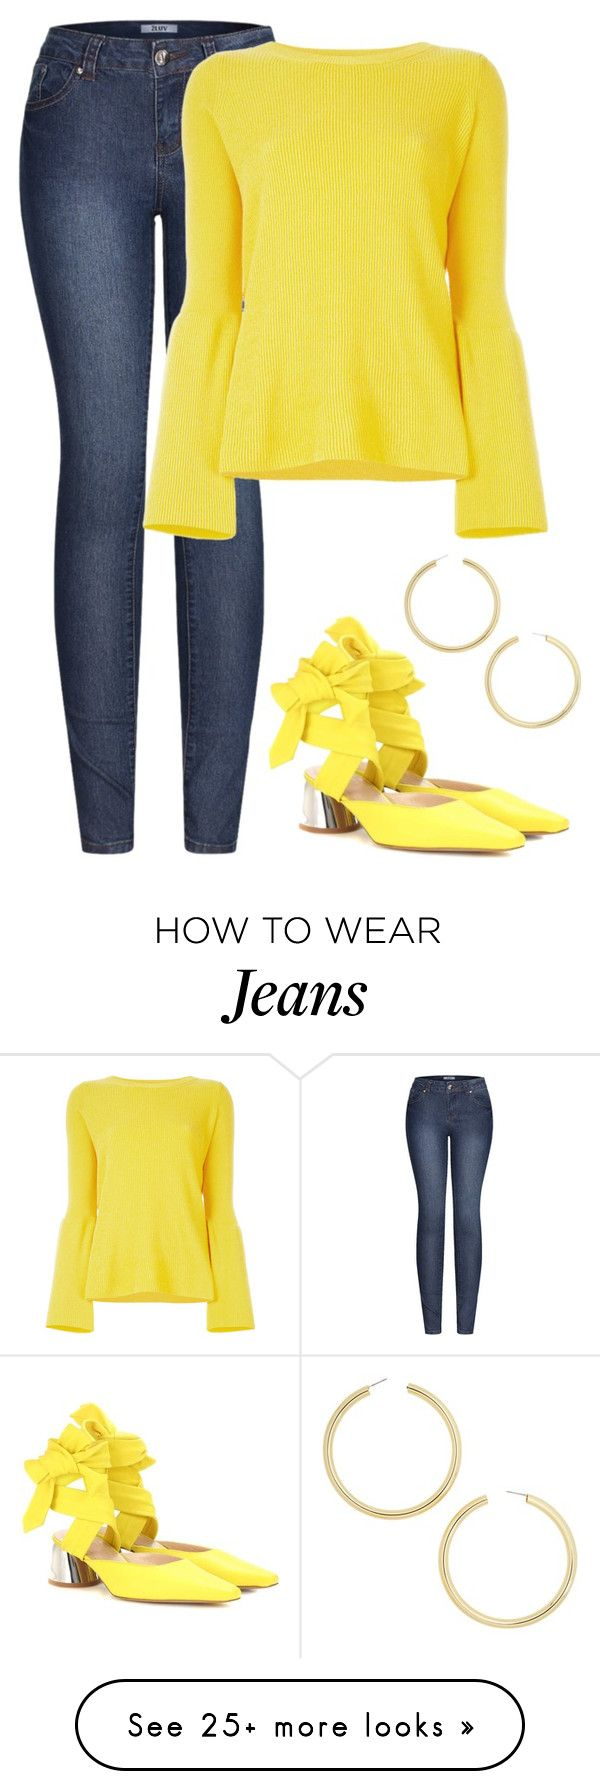 """""""Yellow"""" by giulia-ostara-re on Polyvore featuring 2LUV, STELLA McCARTNEY, E L L E R Y and BaubleBar"""